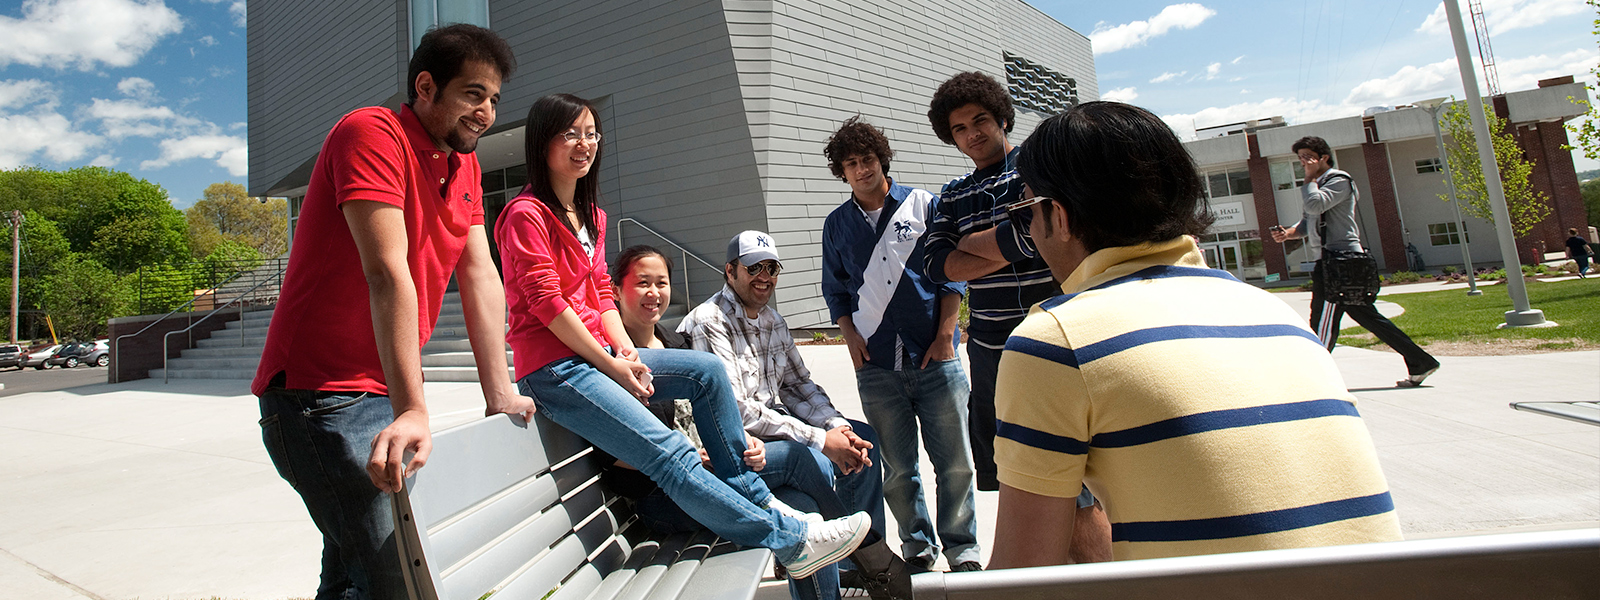 Image of international students on the University of New Haven campus.